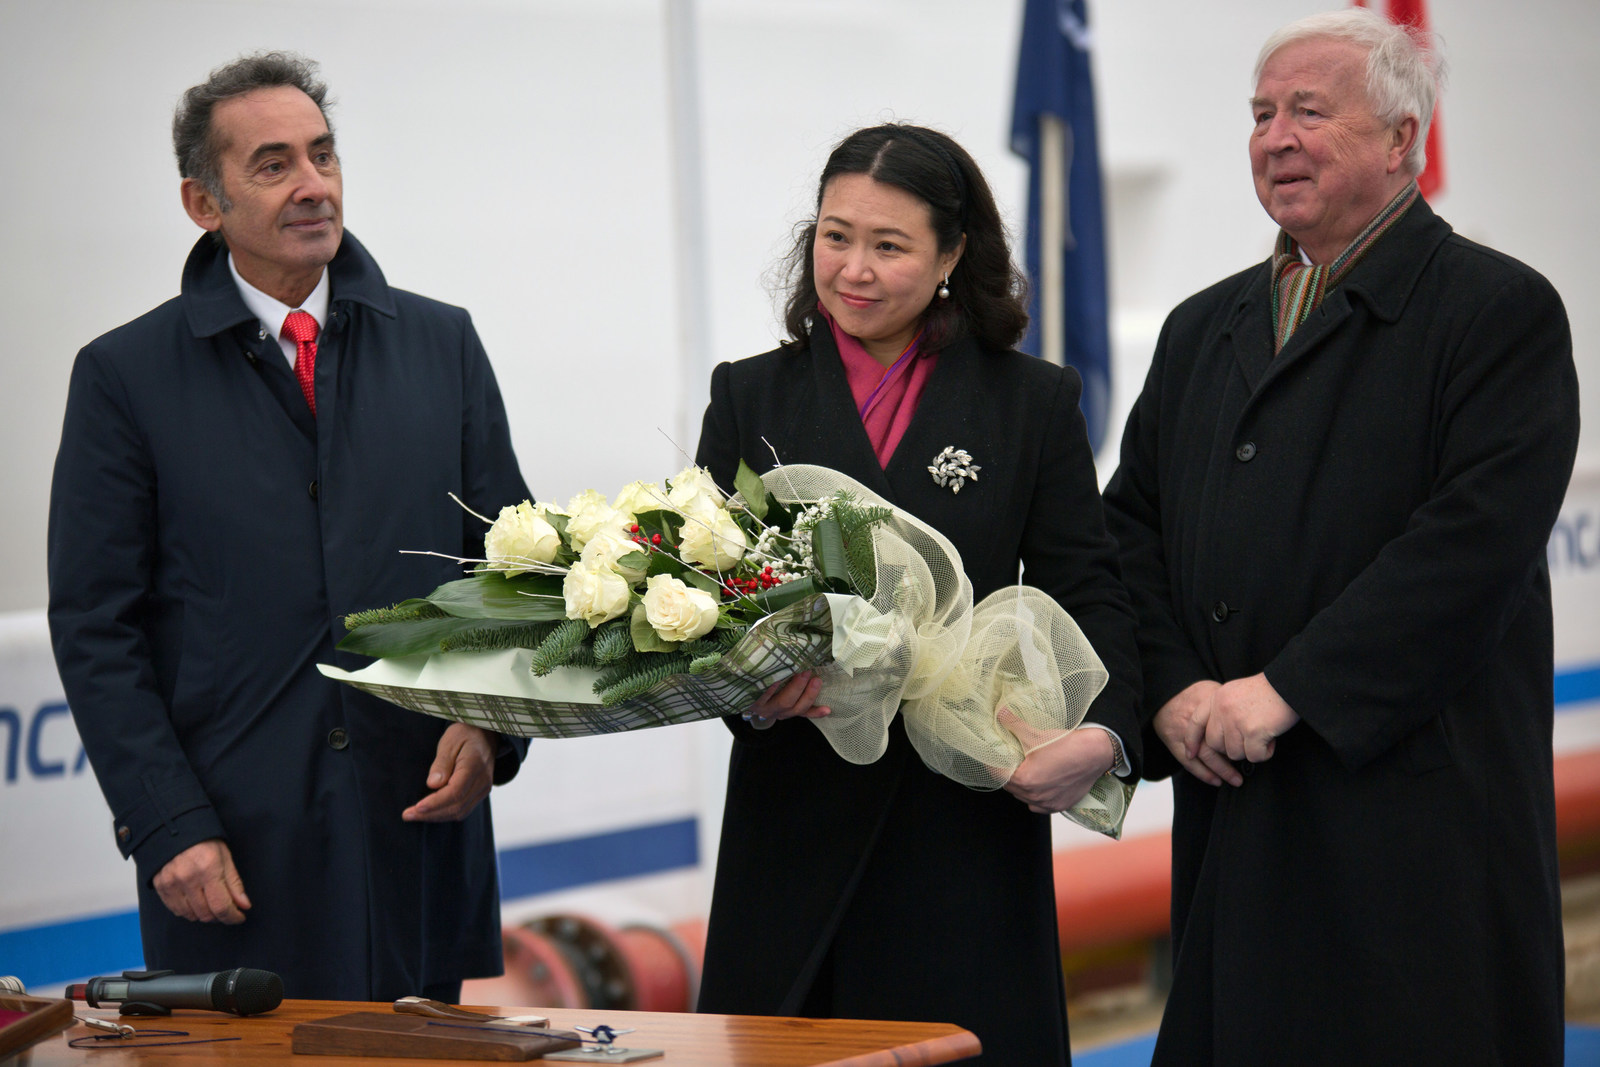 "Viking Cruises Chairman Torstein Hagen (right), with Mrs. Yi Lou, Vice President of China Merchant Bank Financial Leasing, and Fincantieri Director Giovanni Stecconi, during the ""float out"" ceremony of Viking's fourth ocean ship. Mrs. Lou served as ""madrina"" to assist with the ceremony. The 930-passenger Viking Sun will debut in late 2017. For more information visit www.vikingoceancruises.com."